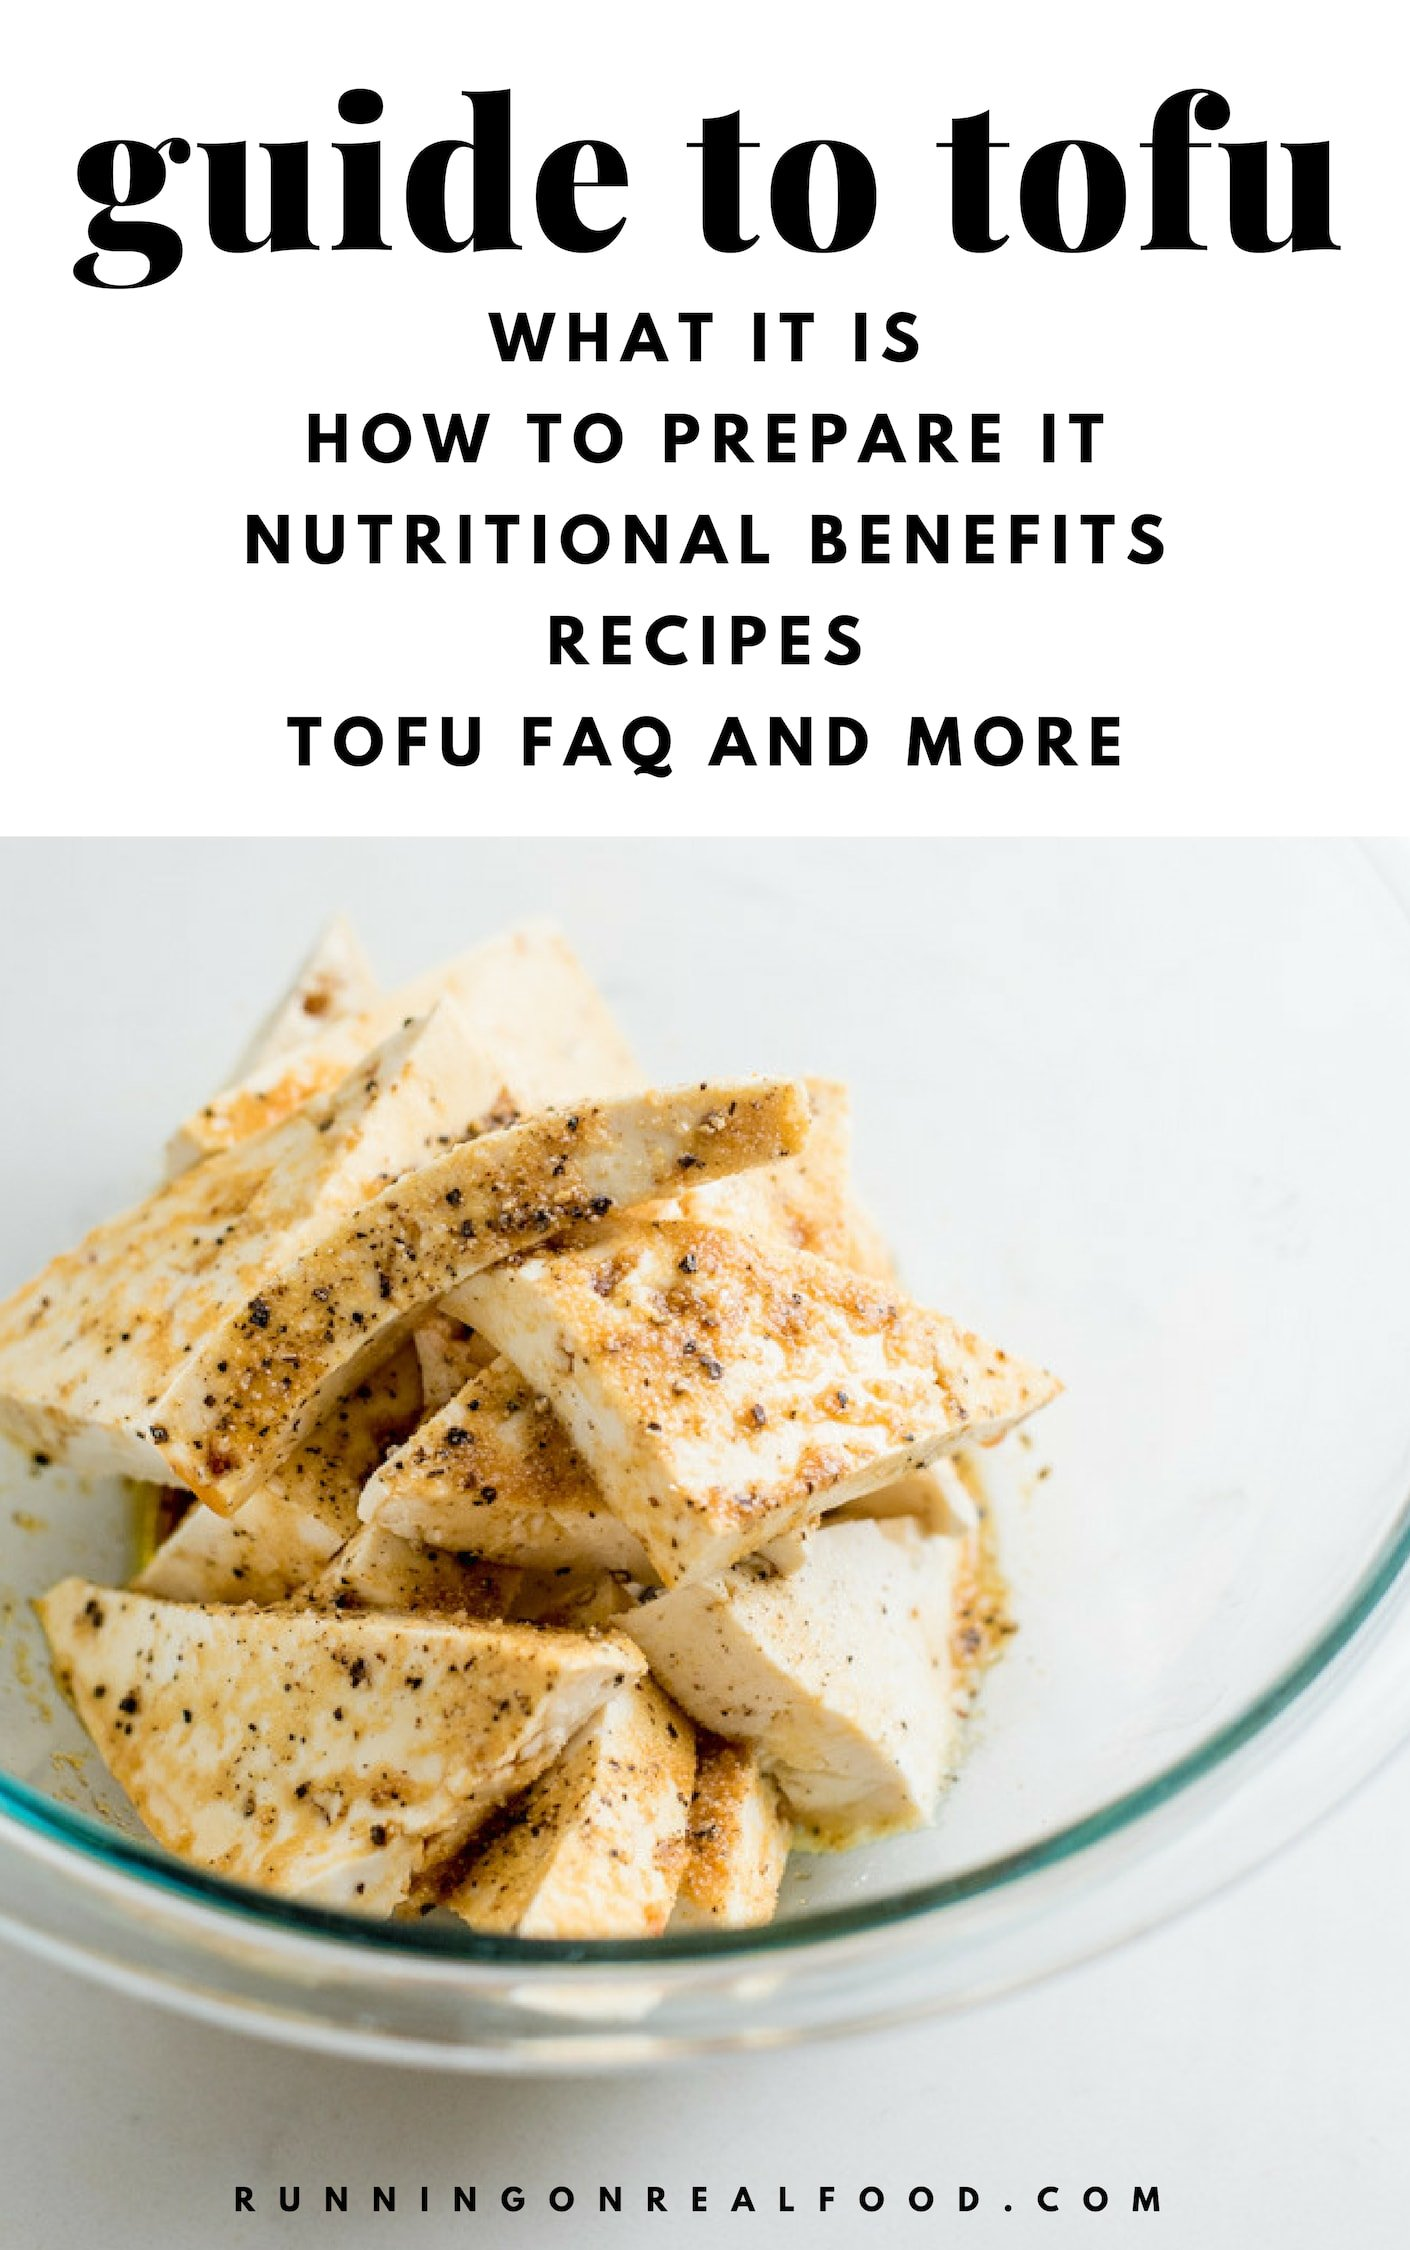 In this guide to tofu and tempeh, we learn all about the different types of tofu, what it is and how to use it in recipes. Tofu is a good source of protein, can be eaten on its own or used for everything from dressings, to desserts and baking, to tofu scrambles and more.